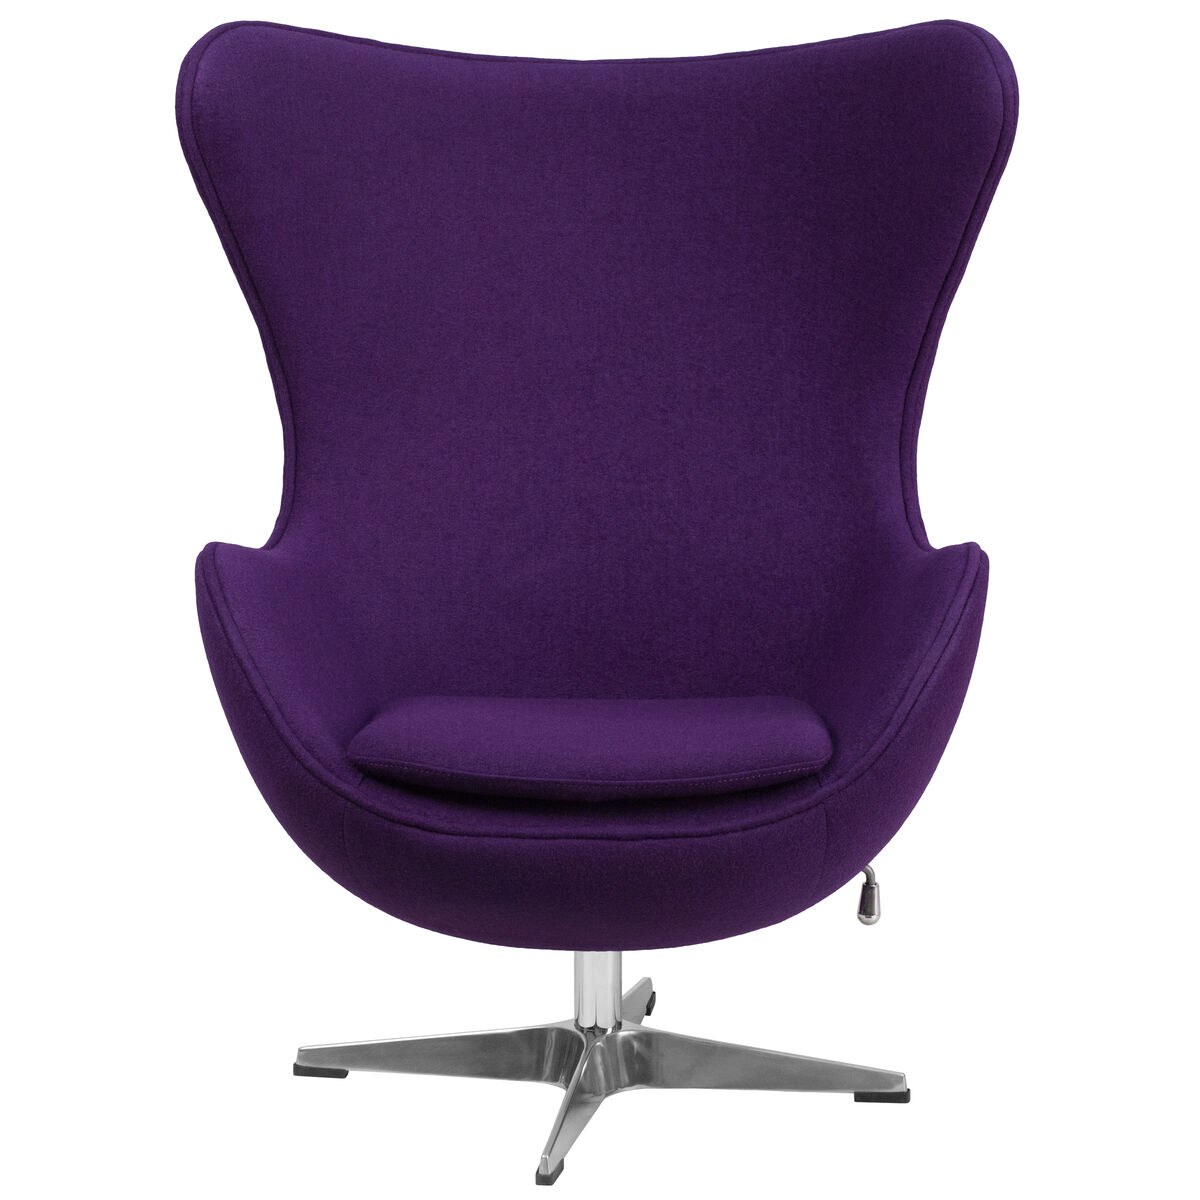 Our Purple Wool Fabric Egg Chair With Tilt Lock Mechanism Is On Now